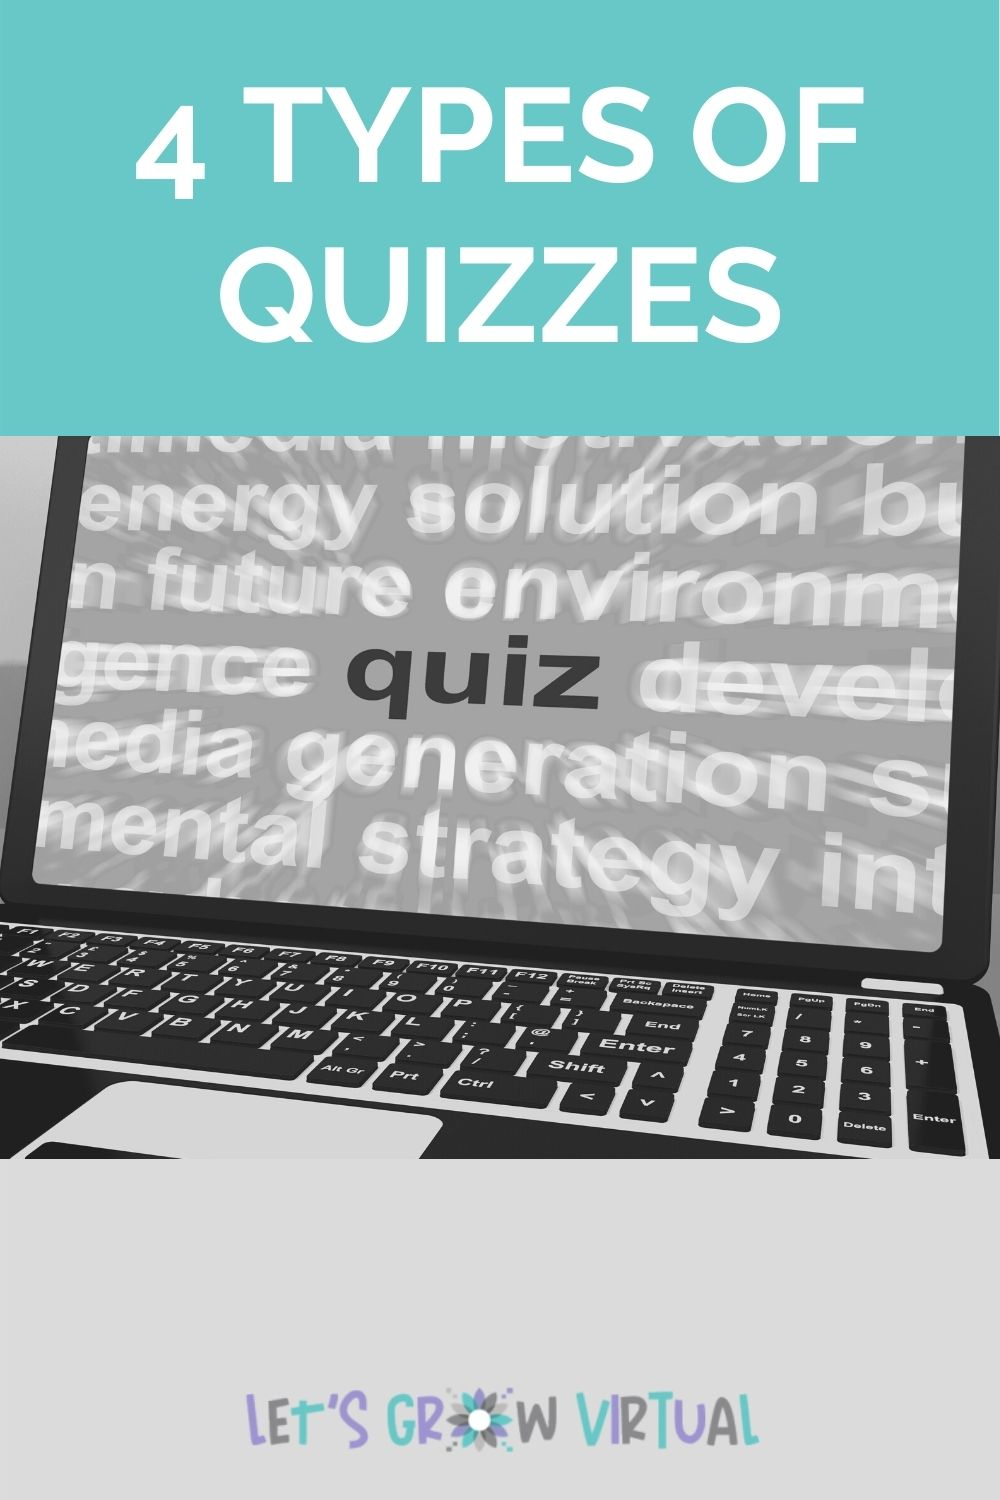 4 Types of Quizzes